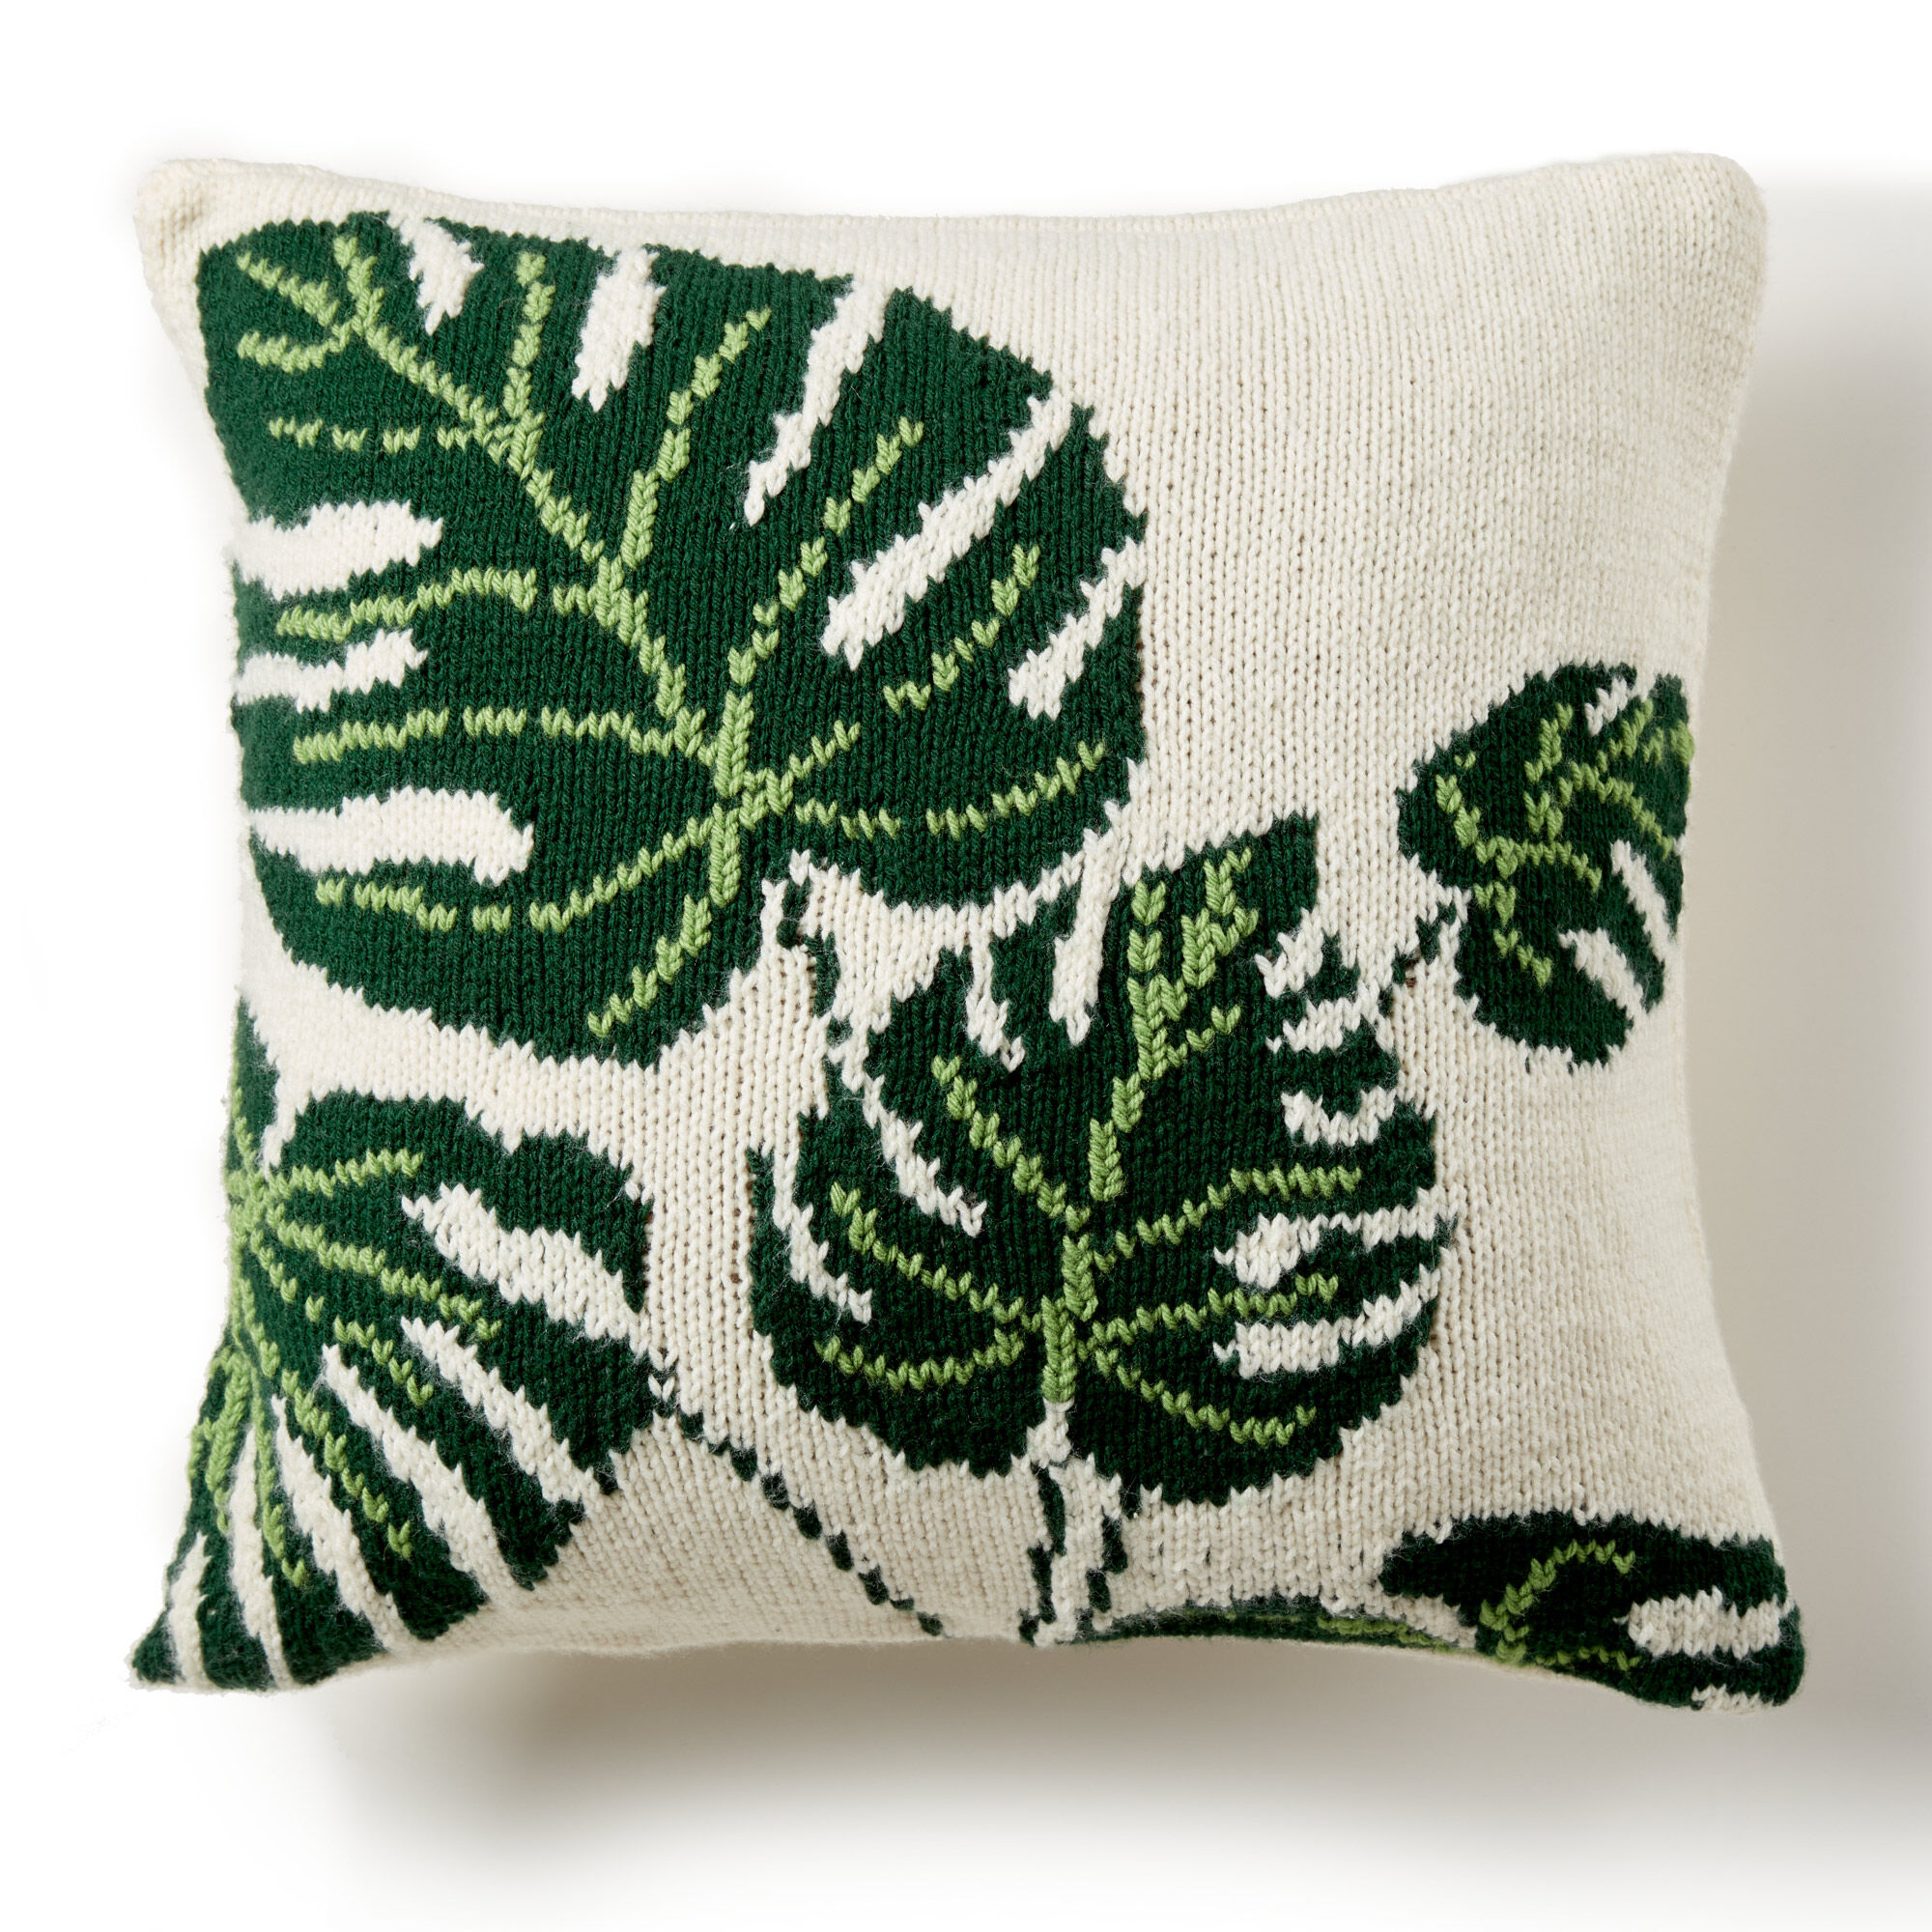 Bernat Tropical Leaf Knit Pillow Pattern | Yarnspirations